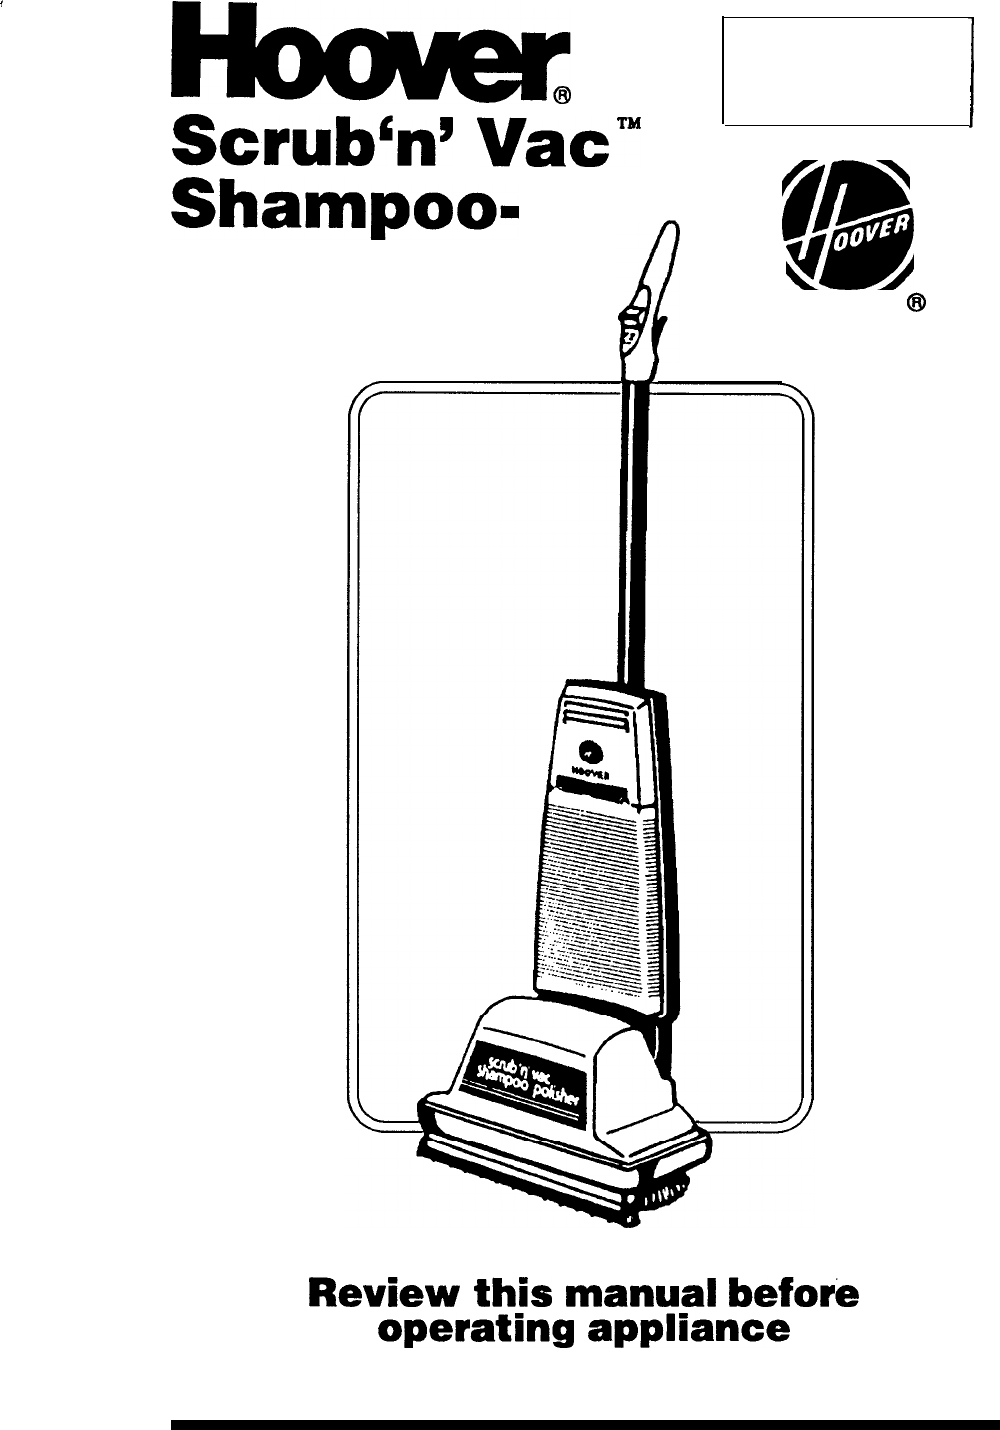 Hoover Carpet Cleaner Shampoo- Polisher User Guide